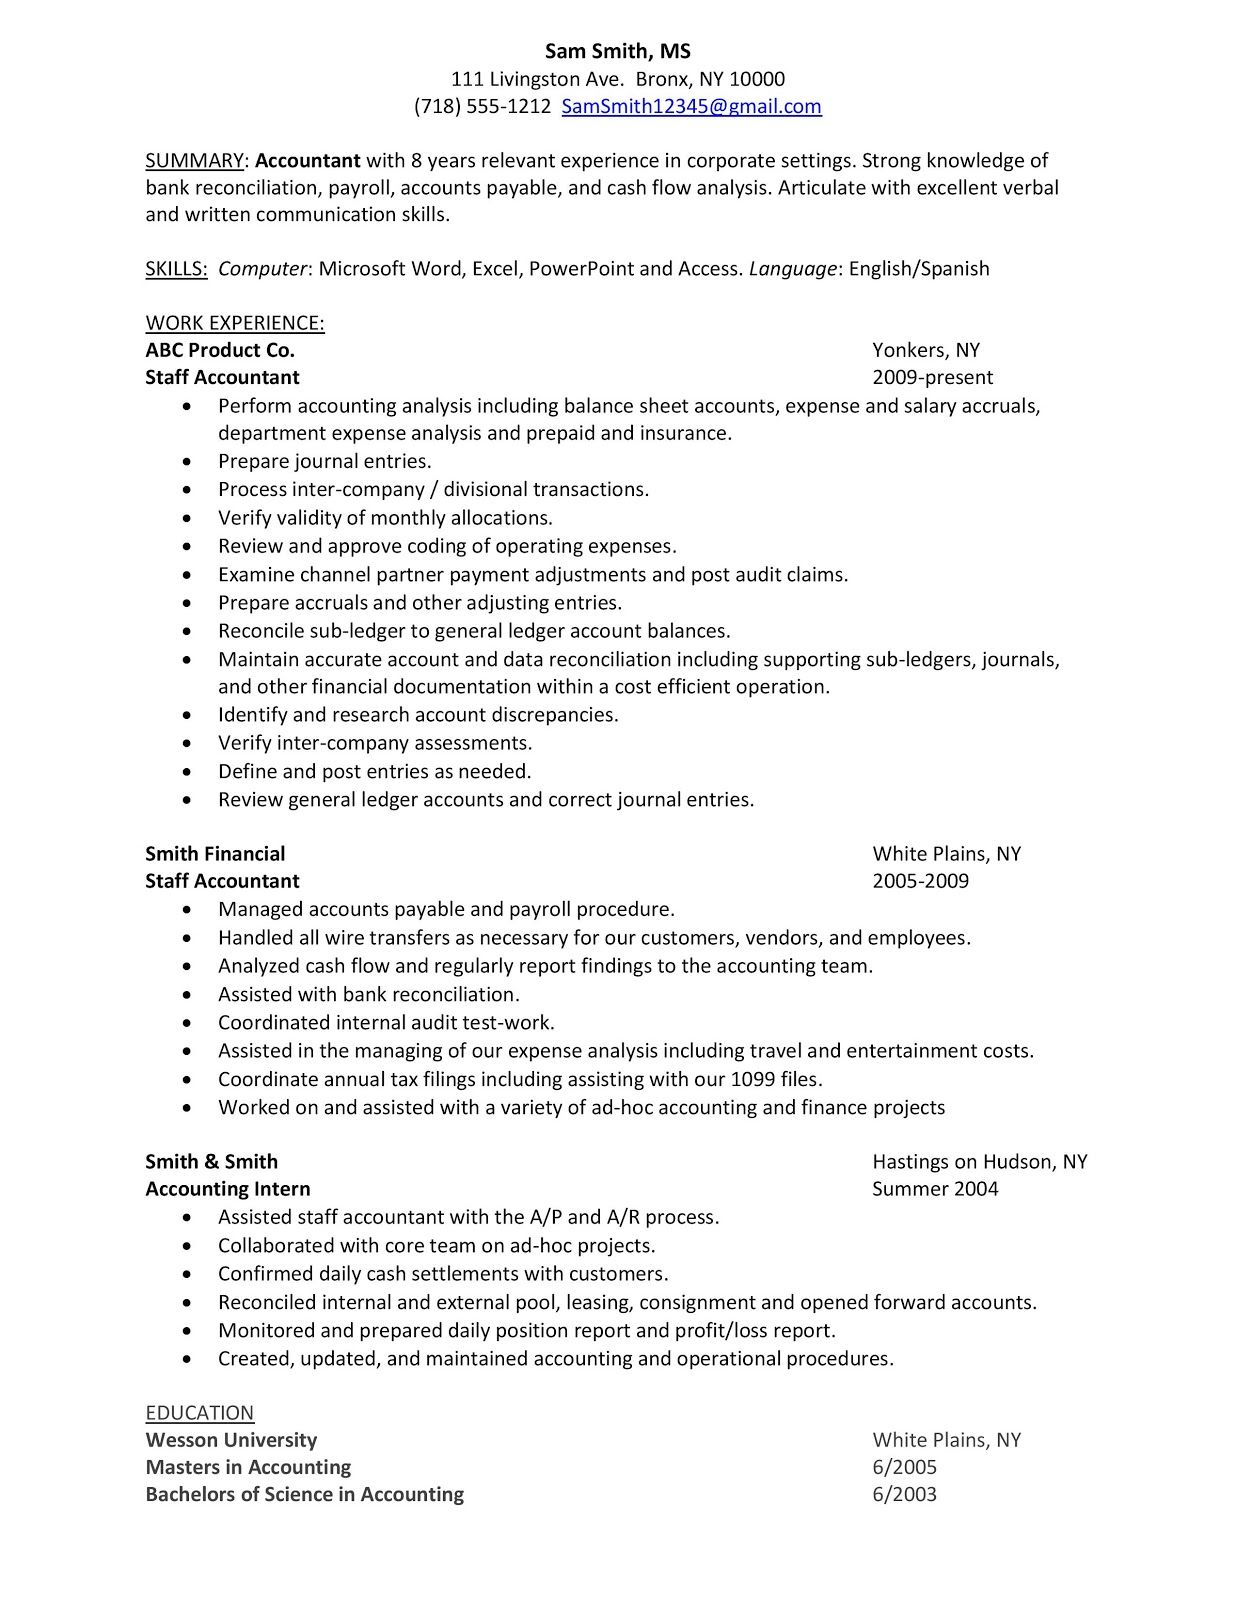 Accountant Resume Sample The Power For Career Success And Know Someone What Now Staff